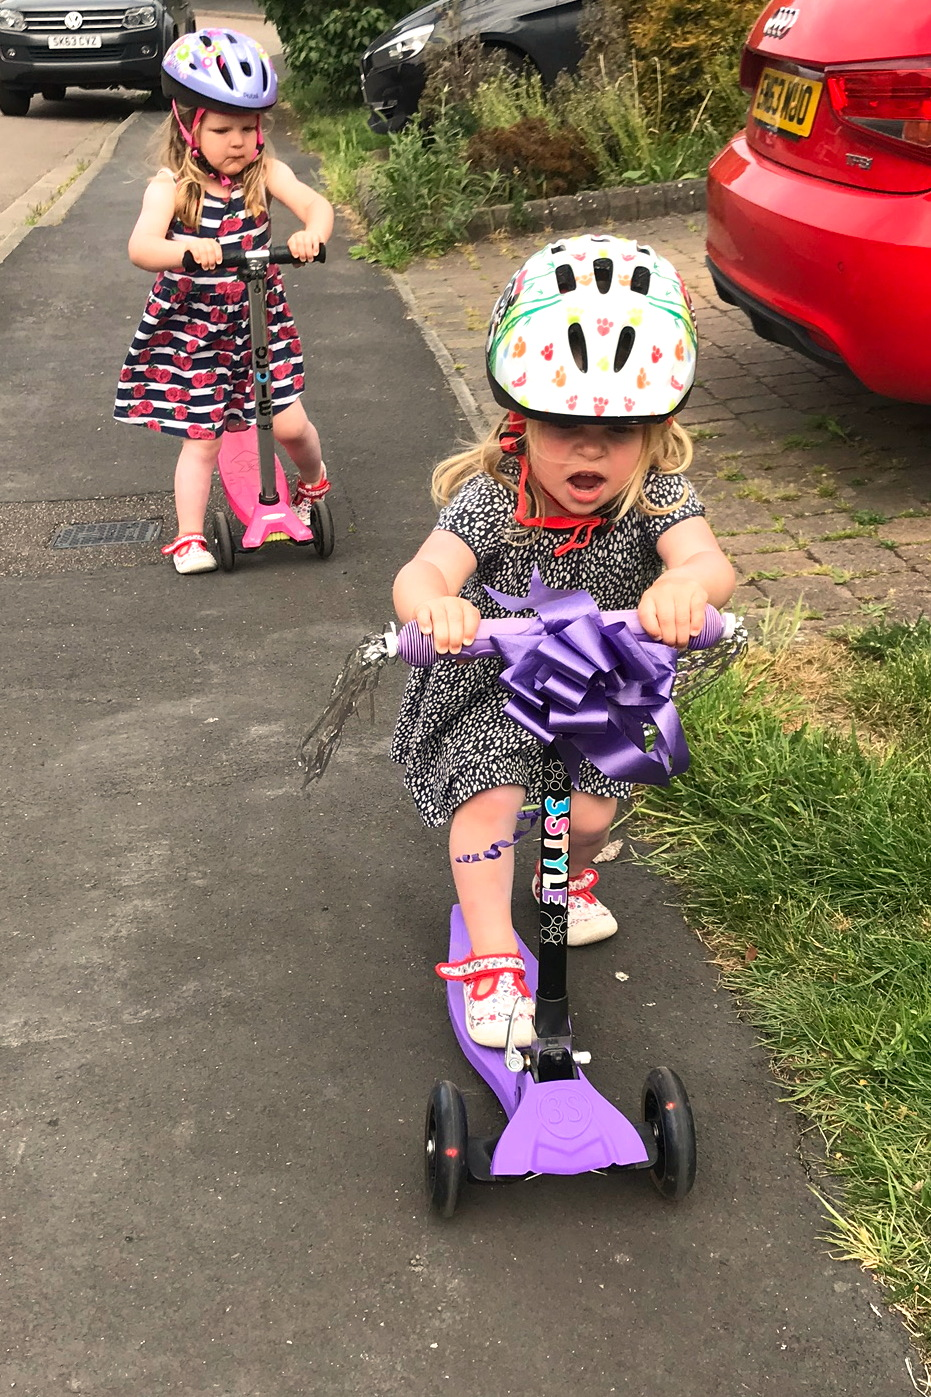 Two toddler sisters on scooters with helmets on, scooting down a pavement